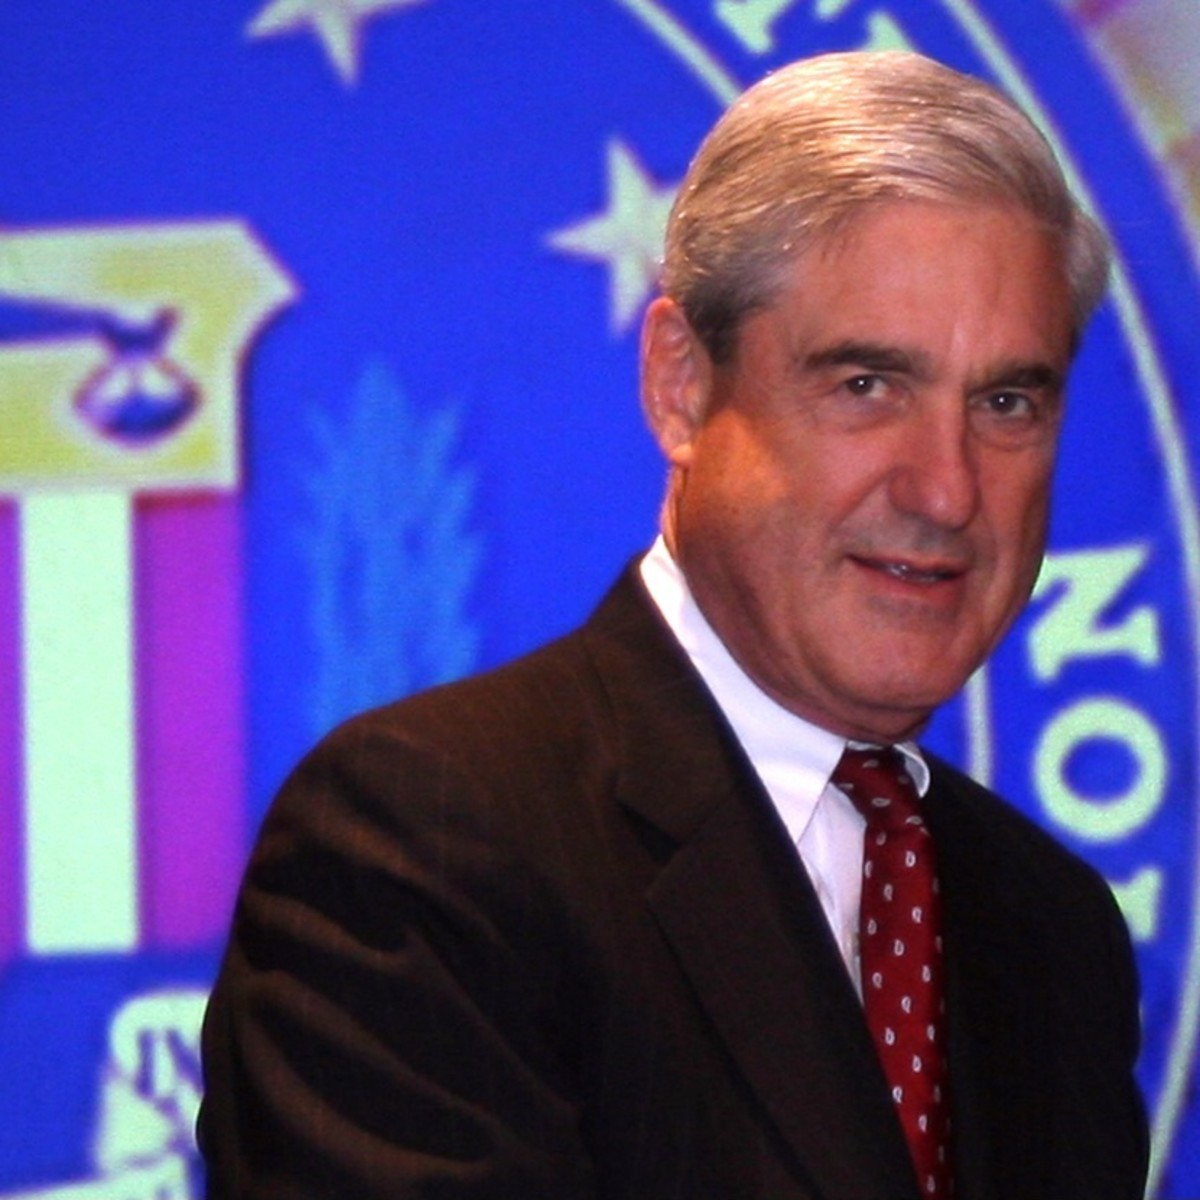 Special counsel in the Special Counsel investigation of 2017 to 2019 Robert Mueller